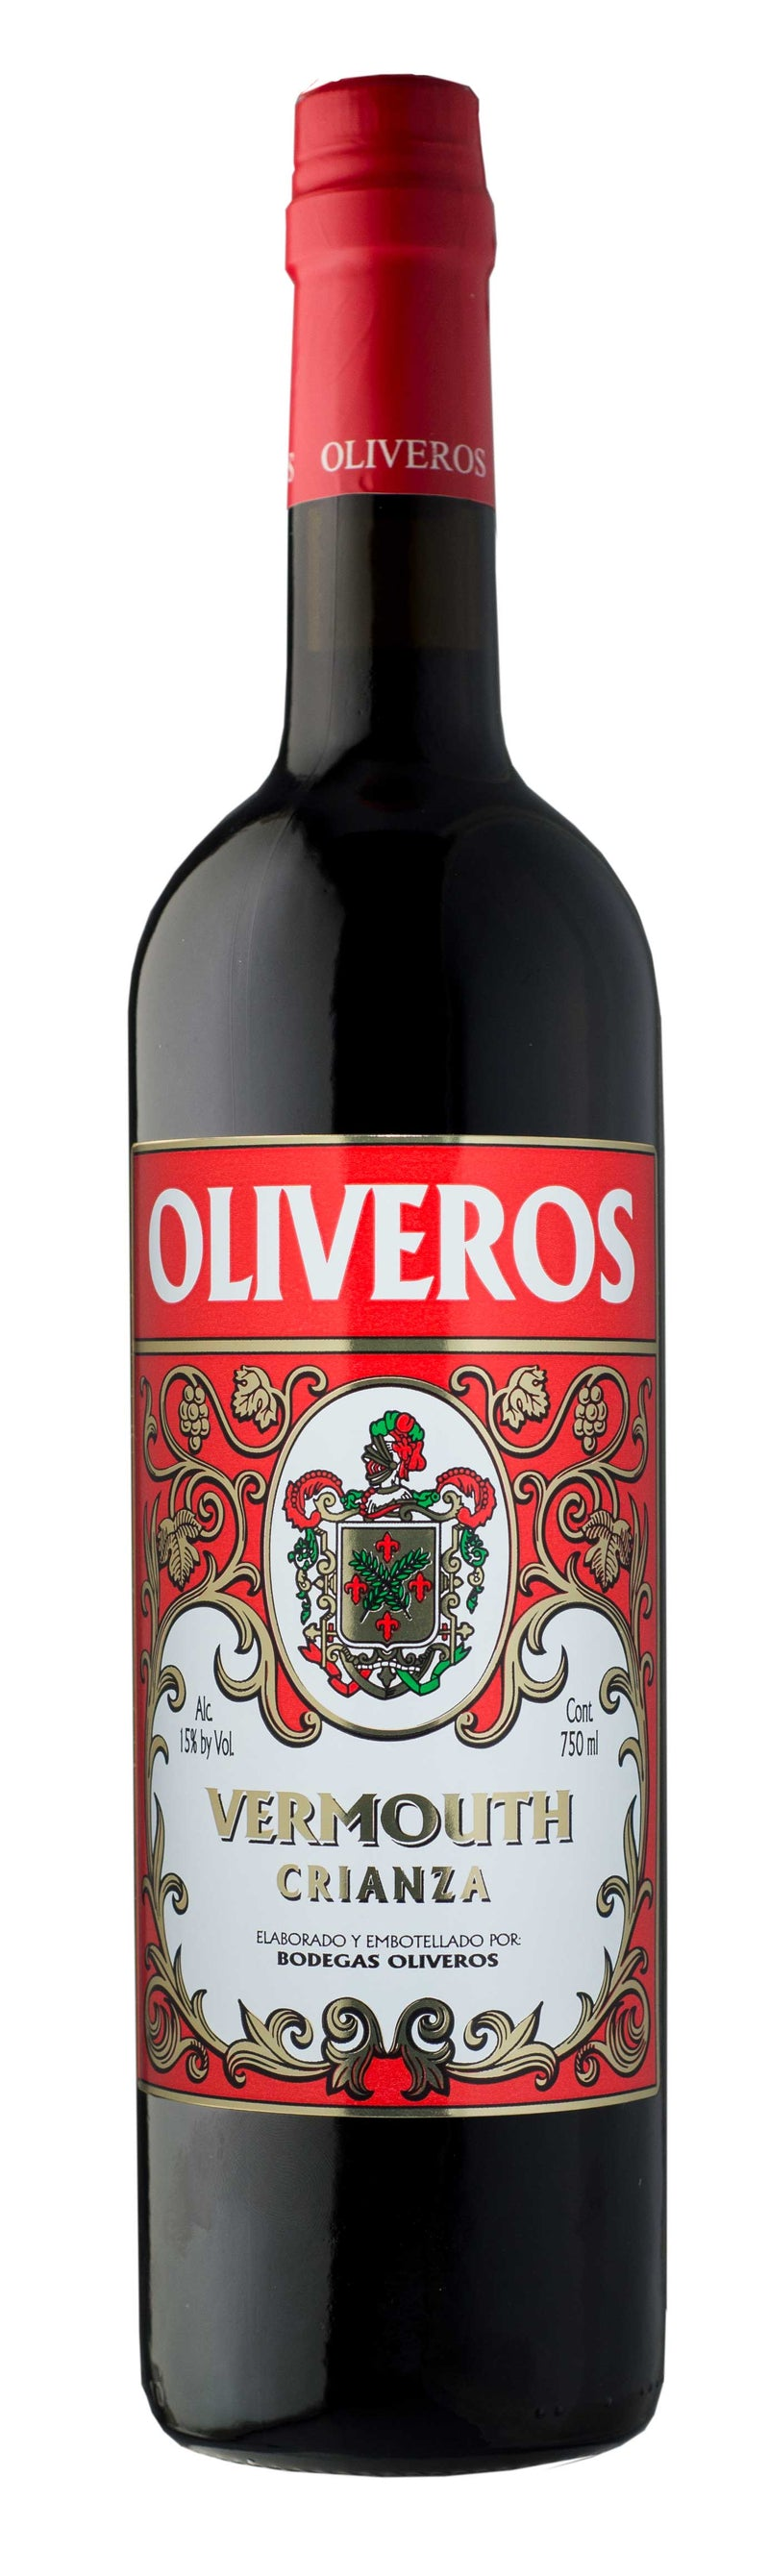 Bodegas Oliveros Vermouth Crianza - Available at Wooden Cork